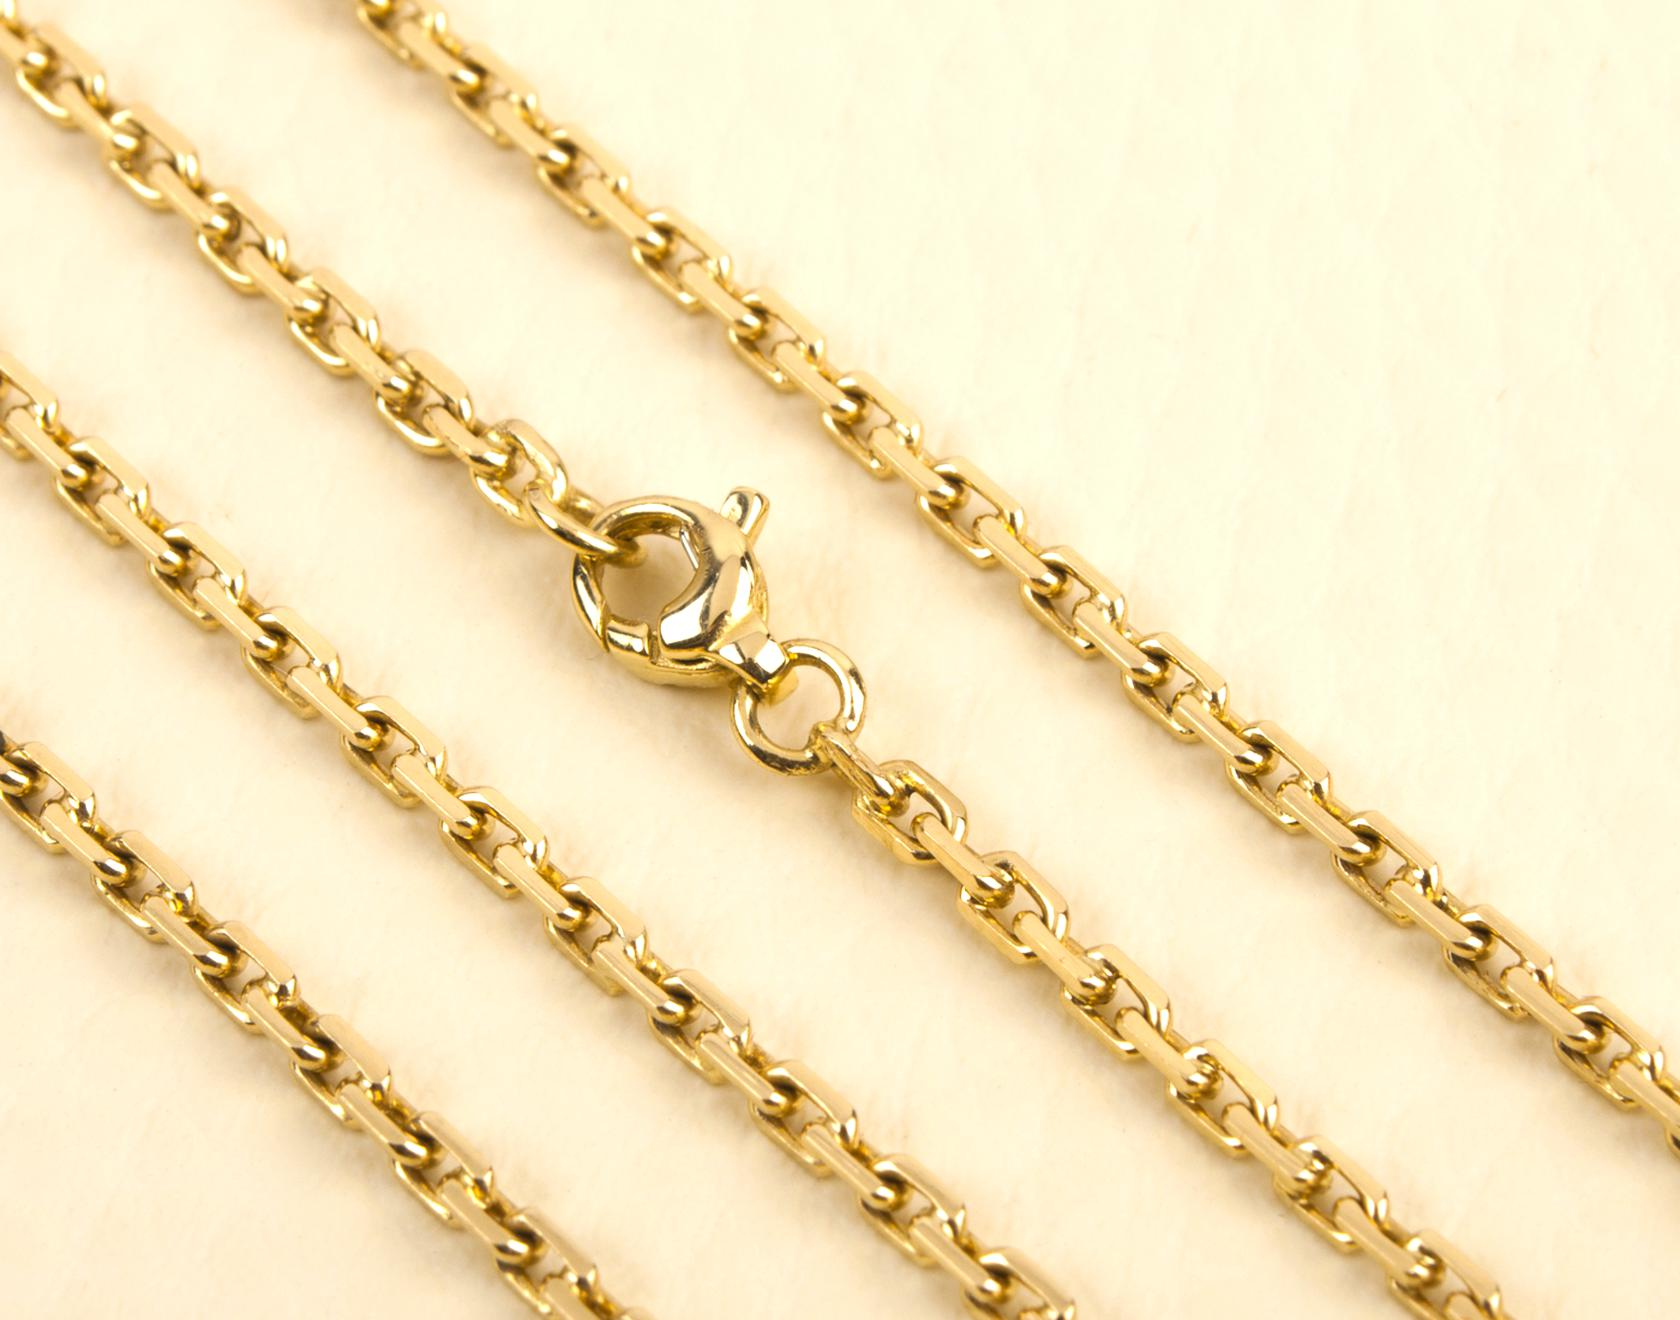 14k solid gold mens chain for sale